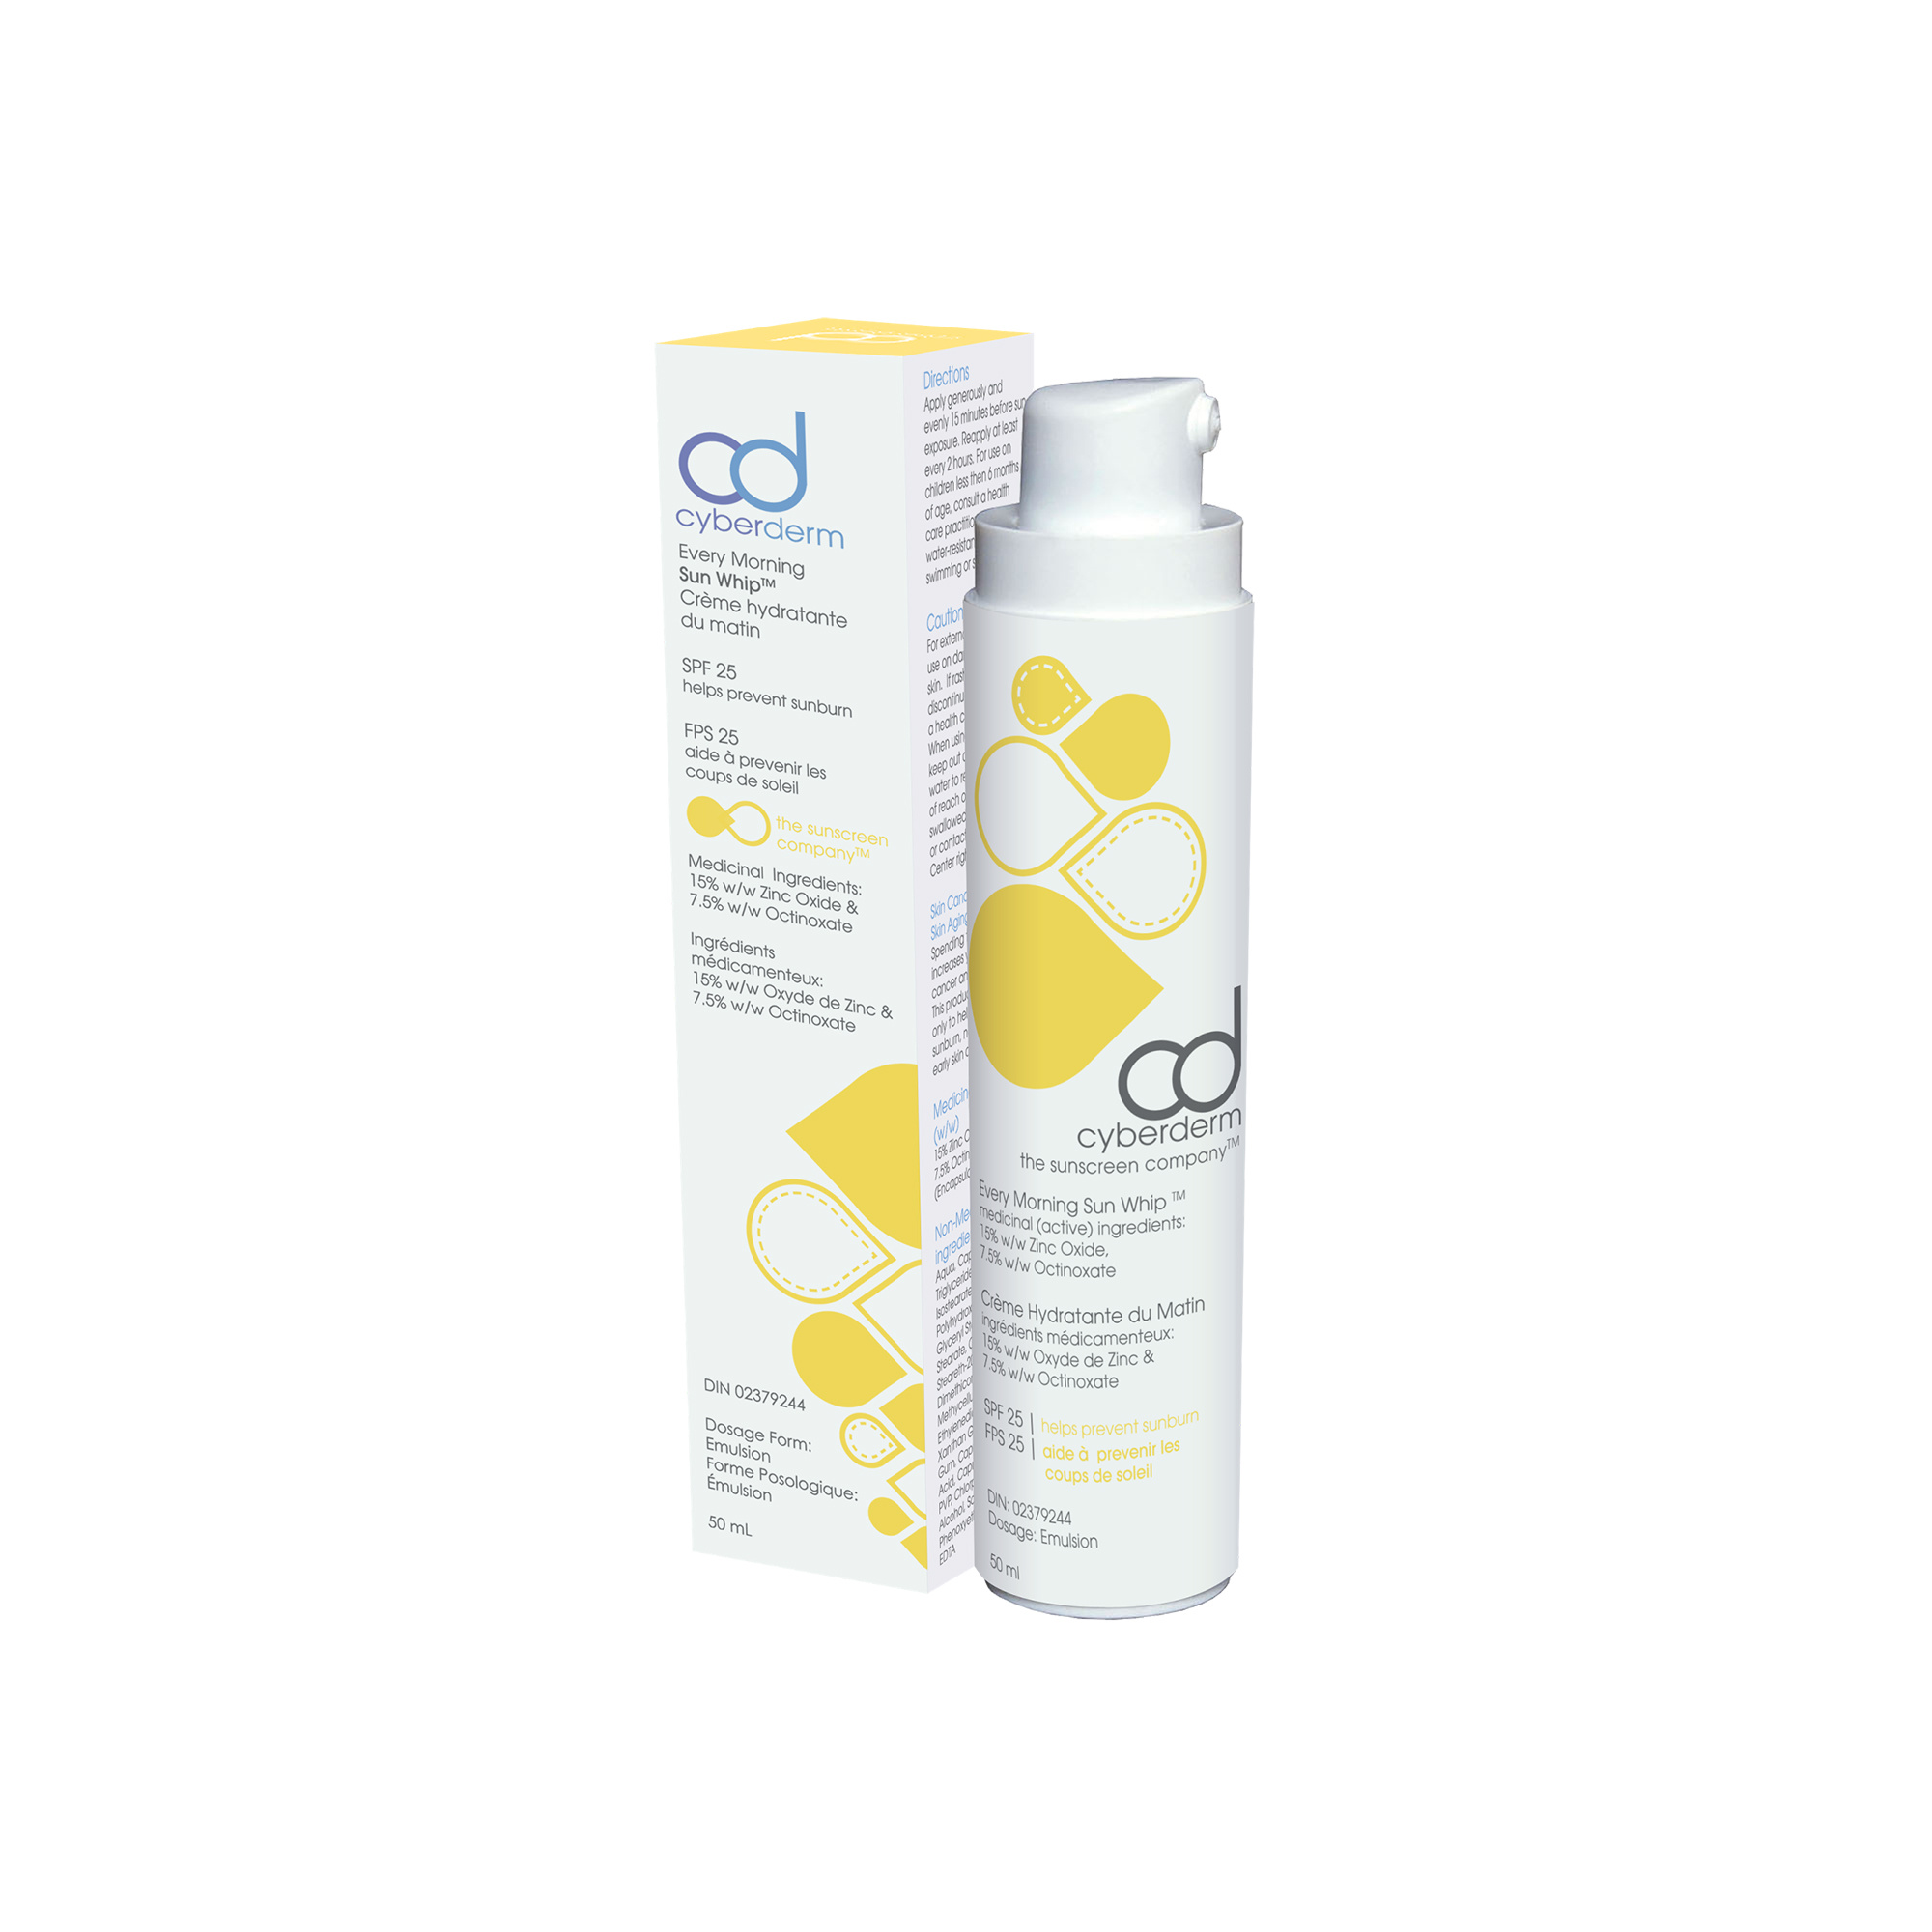 Cyberderm Every Morning Sun Whip SPF 25 - 50 ml